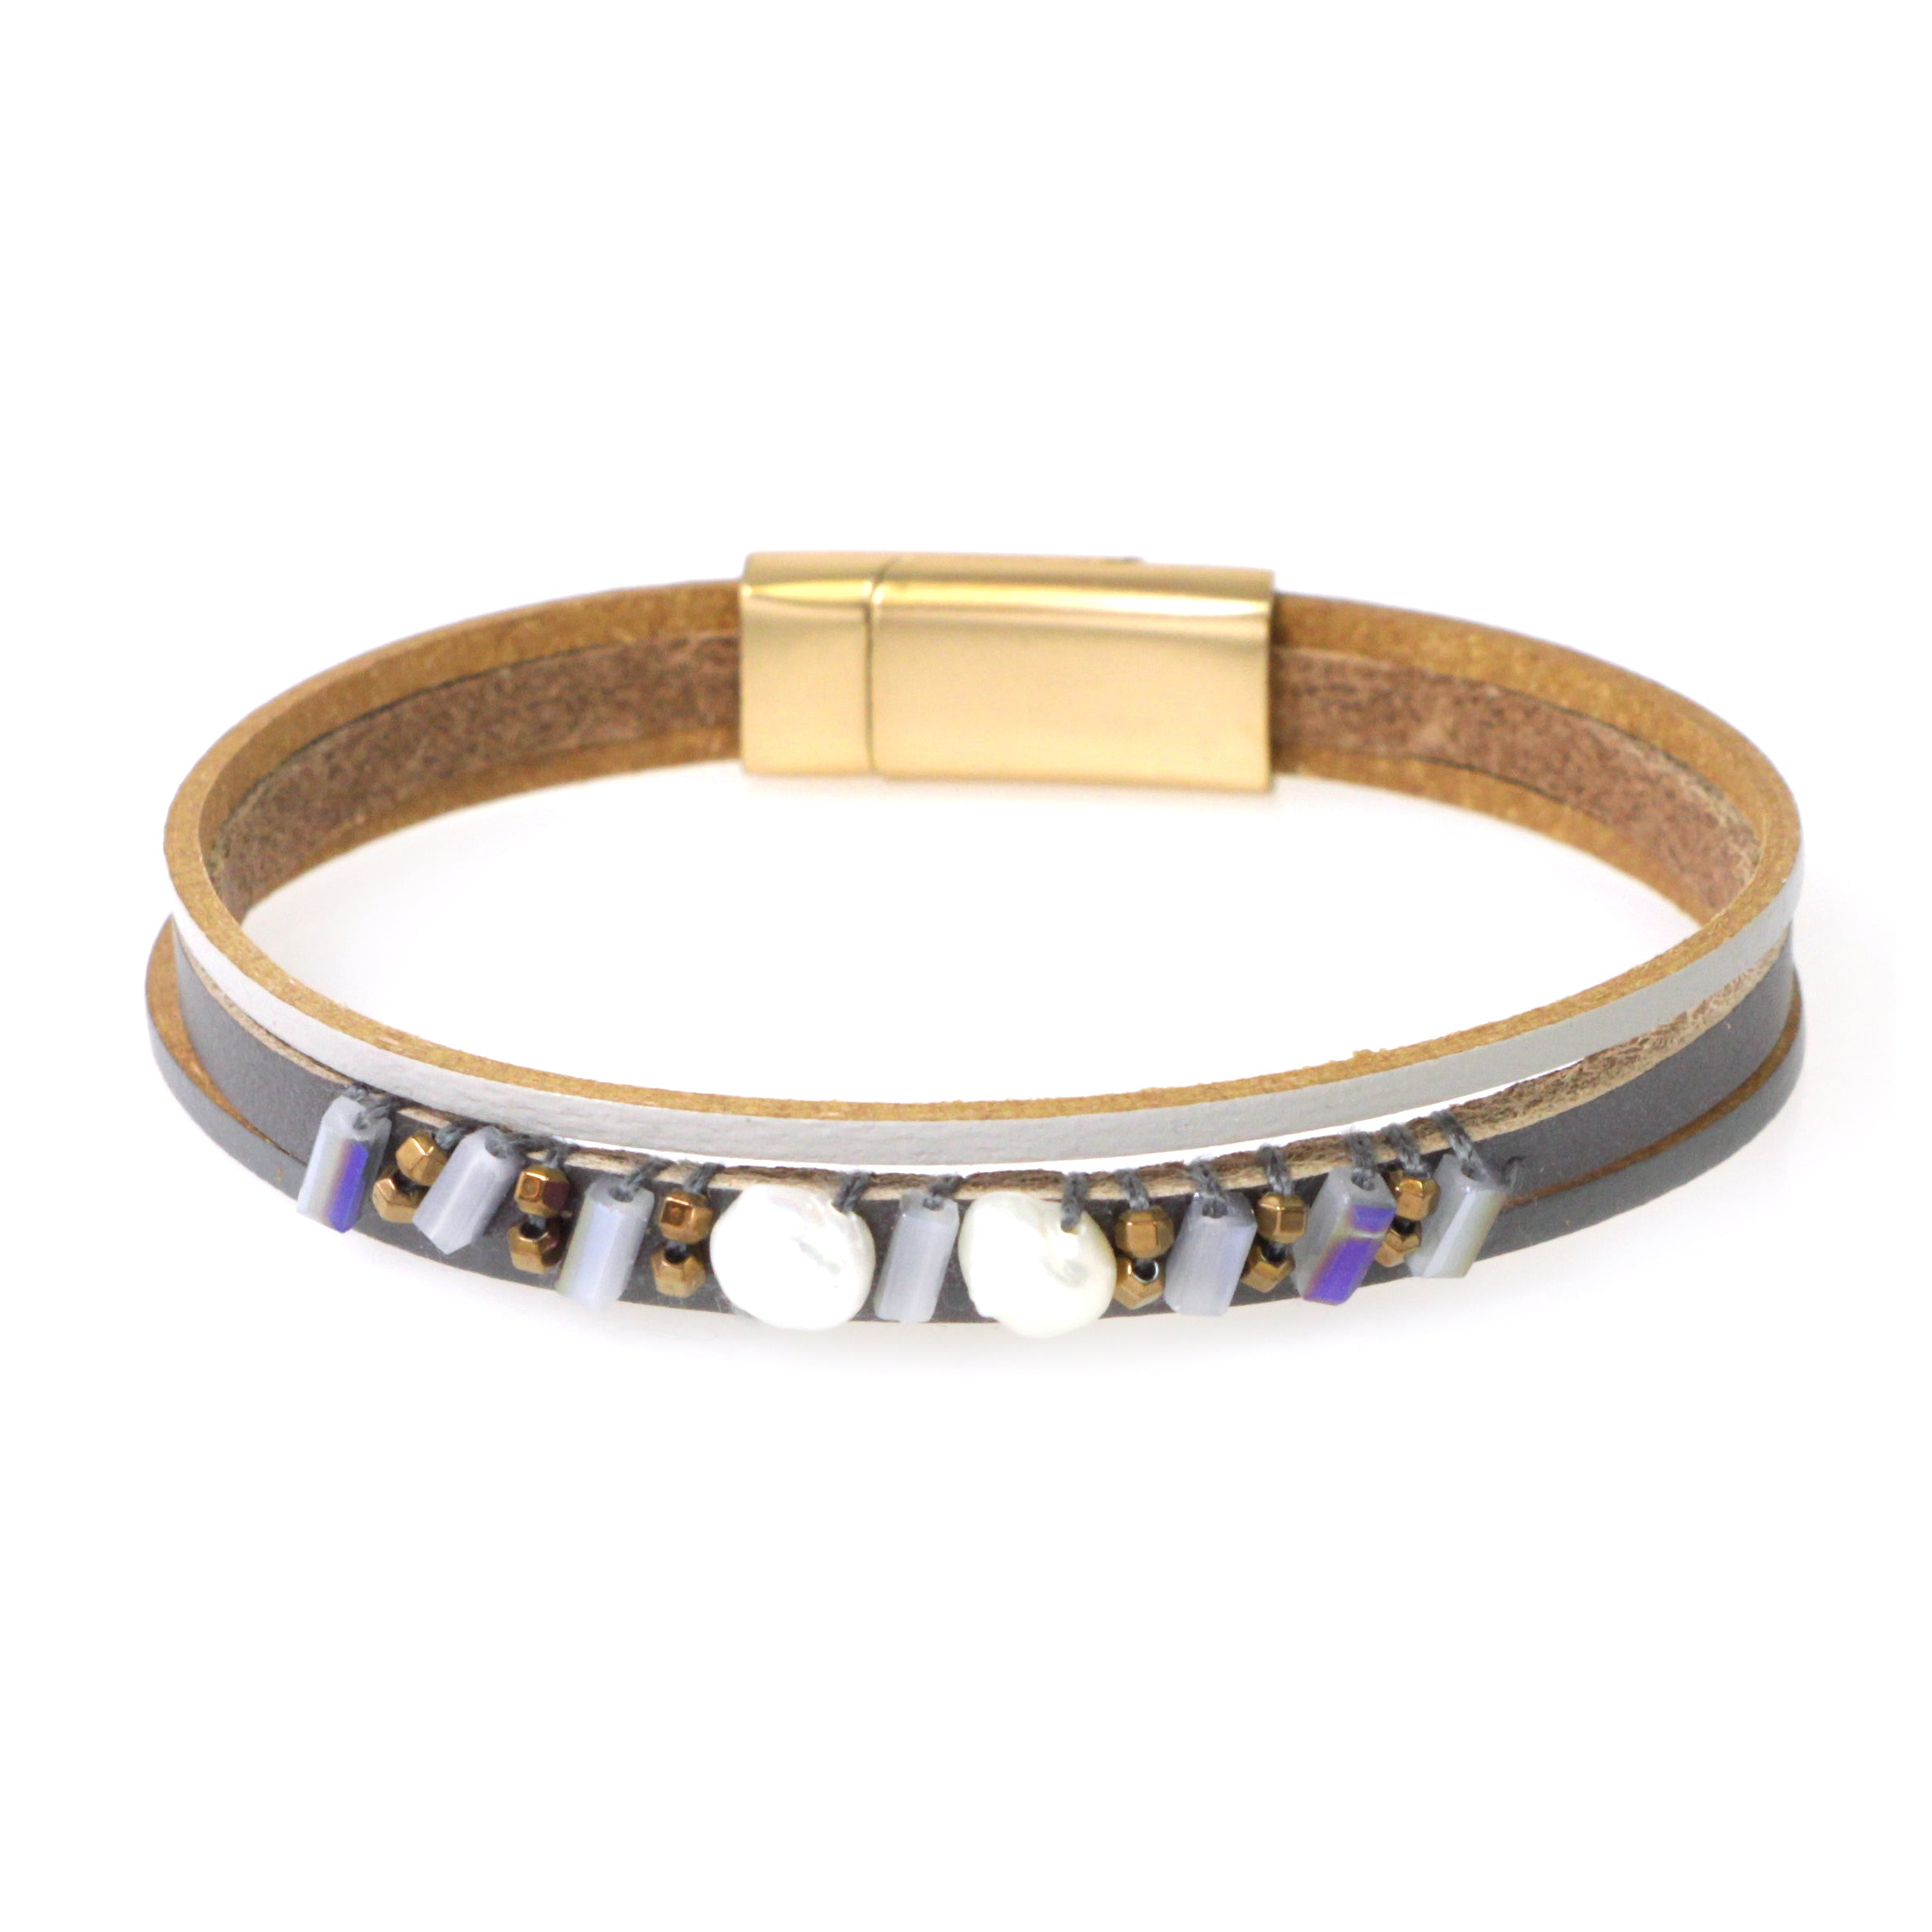 Beads Stone Genuine Leather Magnetic Bracelet